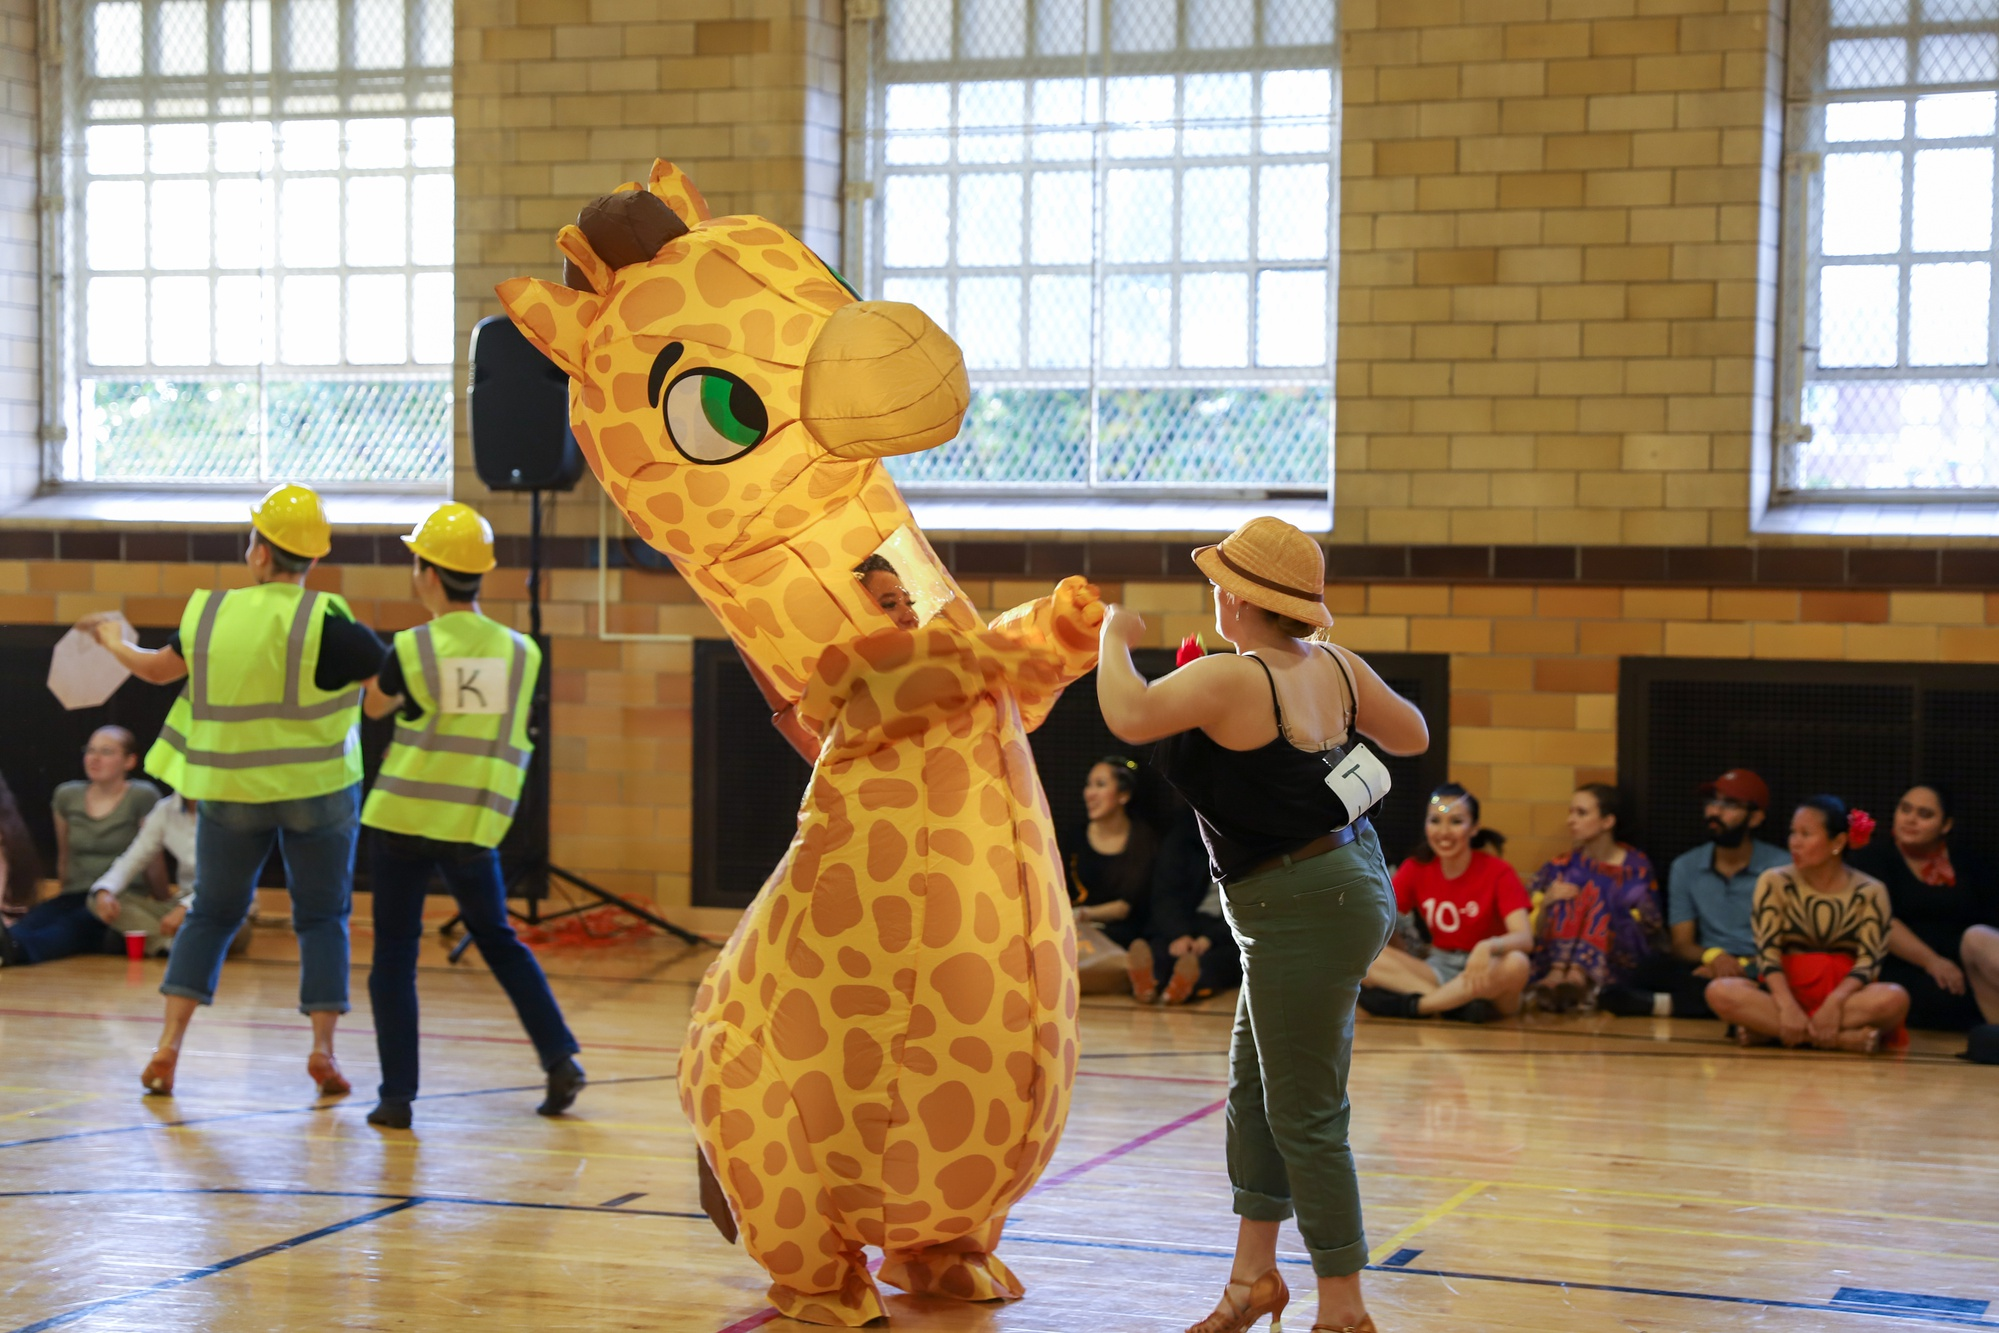 Several dancers at the Harvard Beginners ballroom competition dressed in zany costumes, including inflatable dinosaur and giraffe costumes.